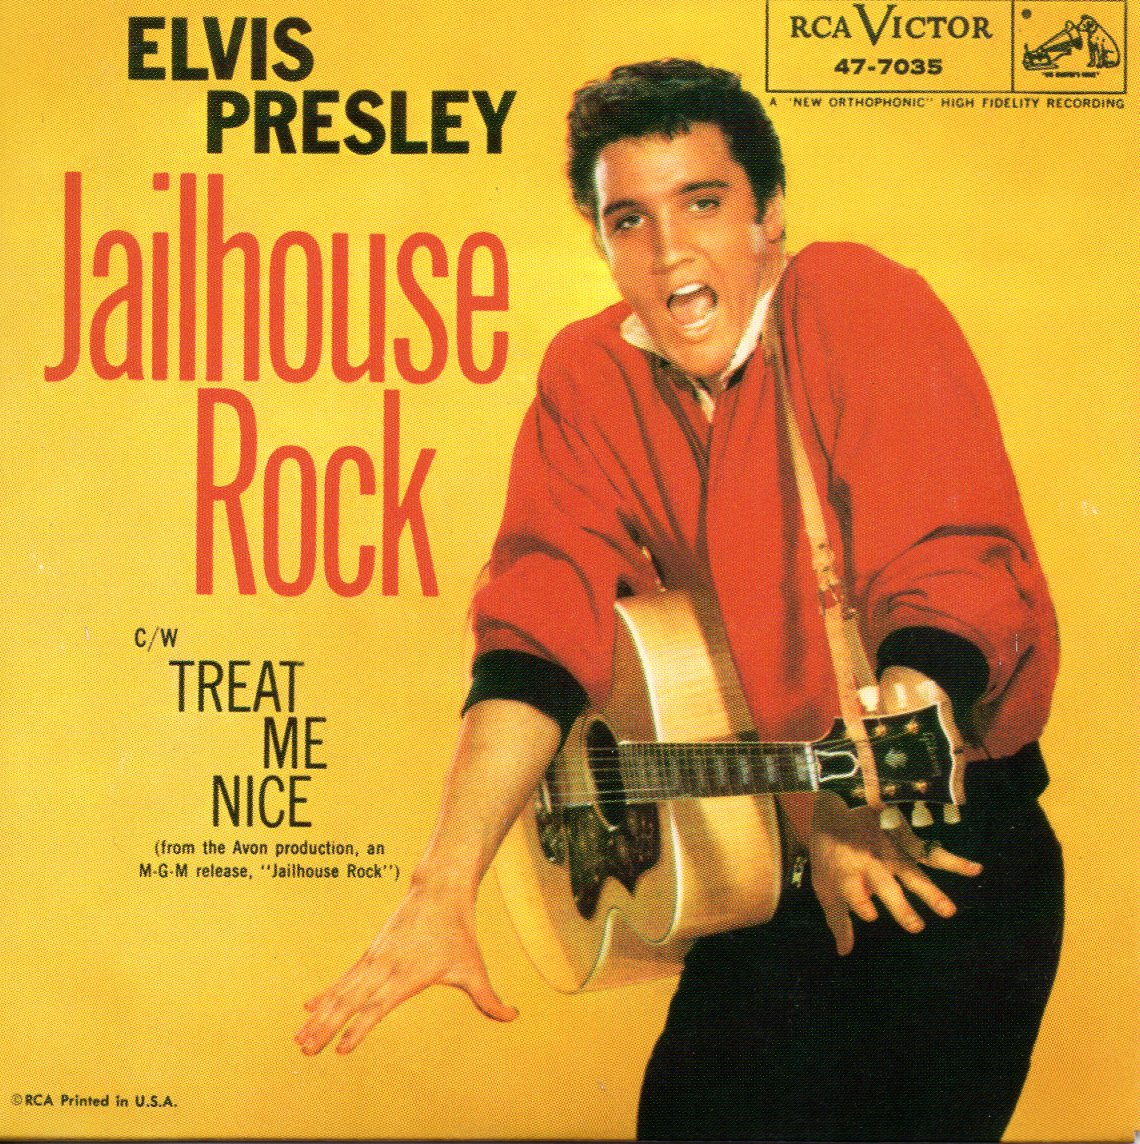 Elvis PRESLEY - Soundtrack : Jailhouse Rock - Jailhouse Rock 2-track Card Sleeve